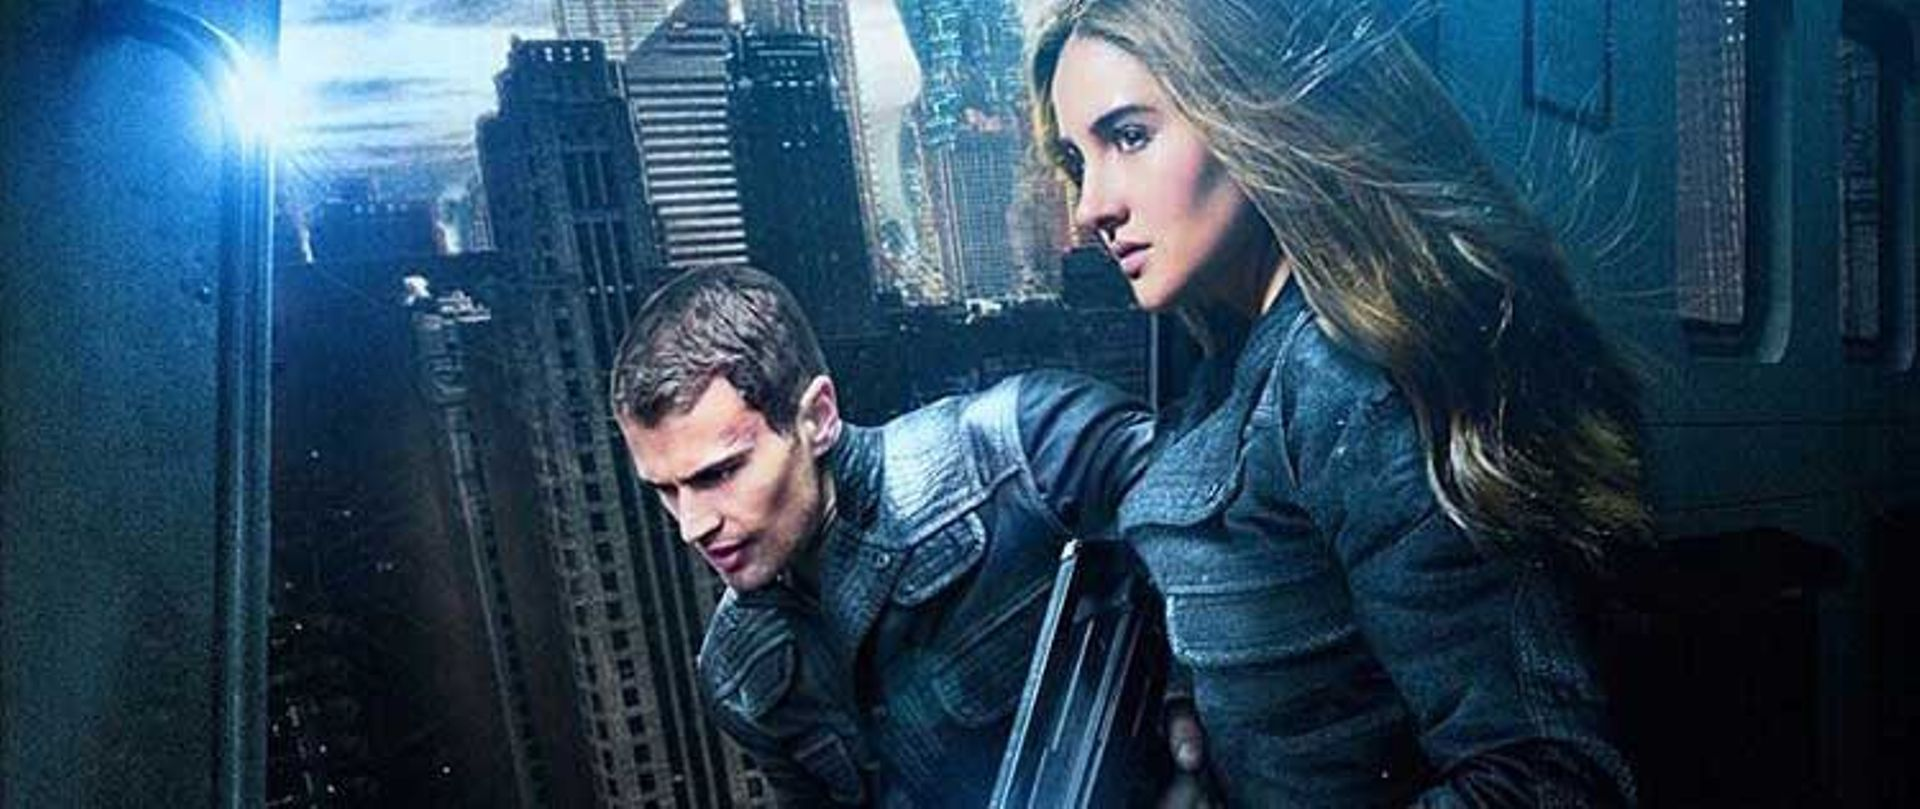 10 Thrilling Dystopian Books Like 'Divergent' by Veronica Roth